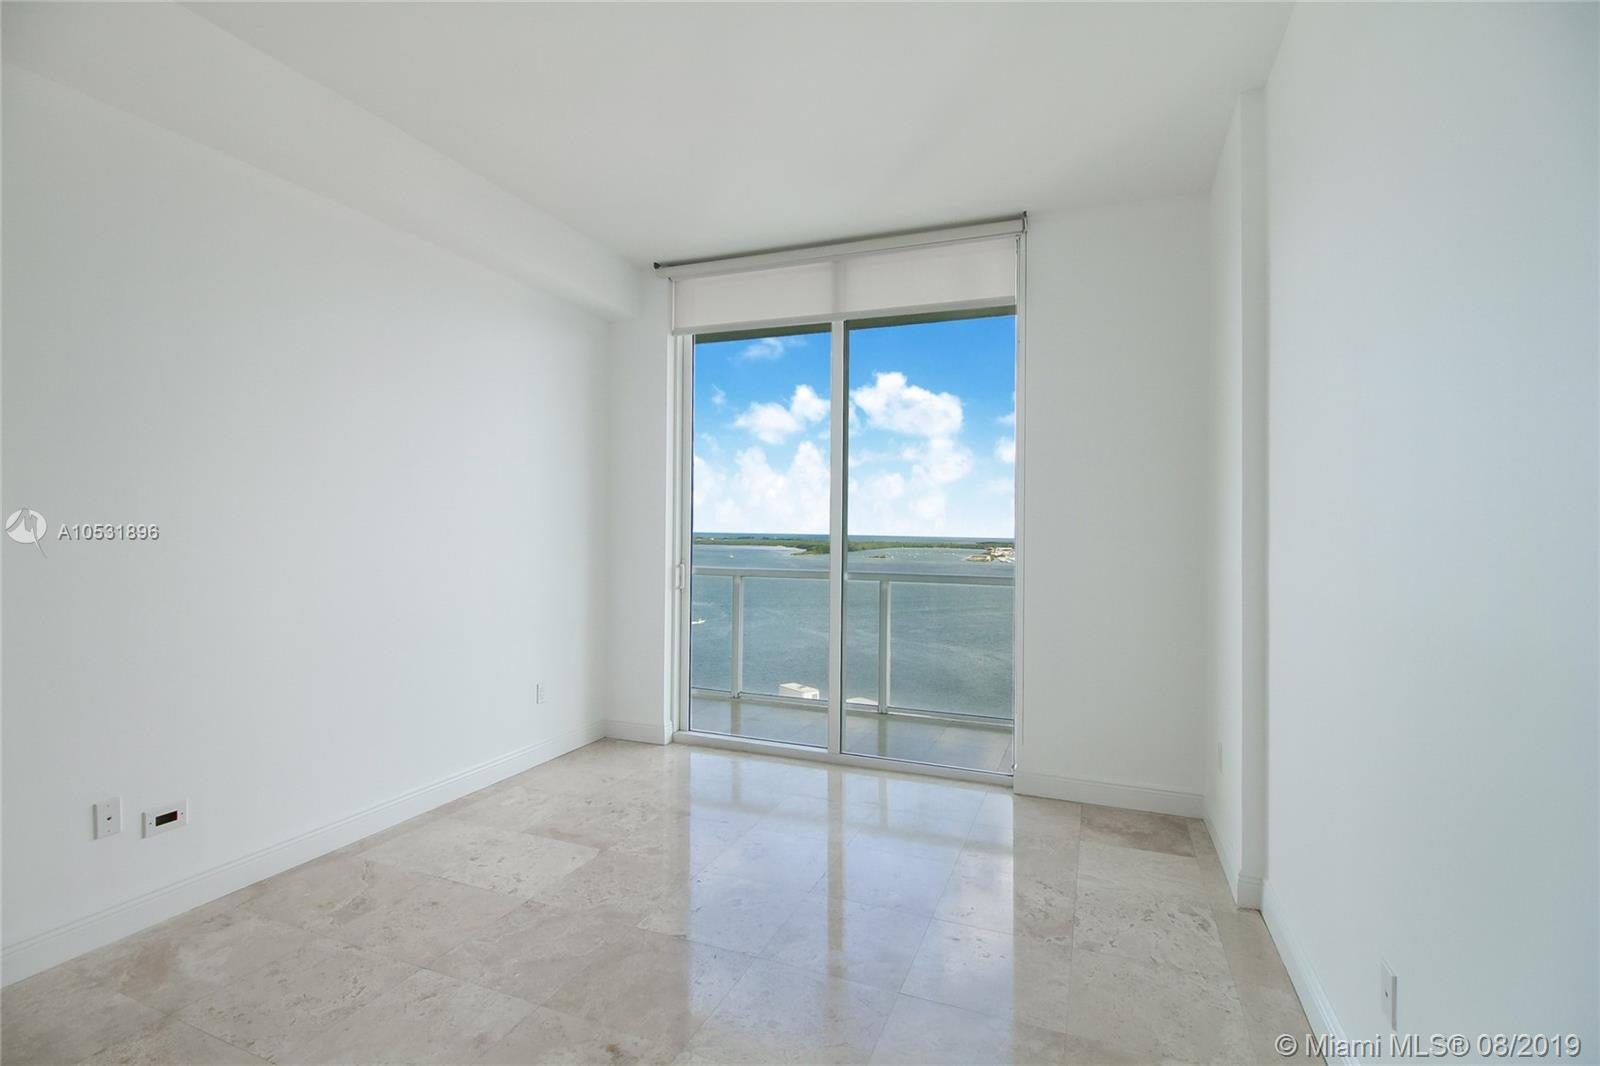 218 SE 14th St, Miami, Fl 33131, Emerald at Brickell #2305, Brickell, Miami A10531896 image #8